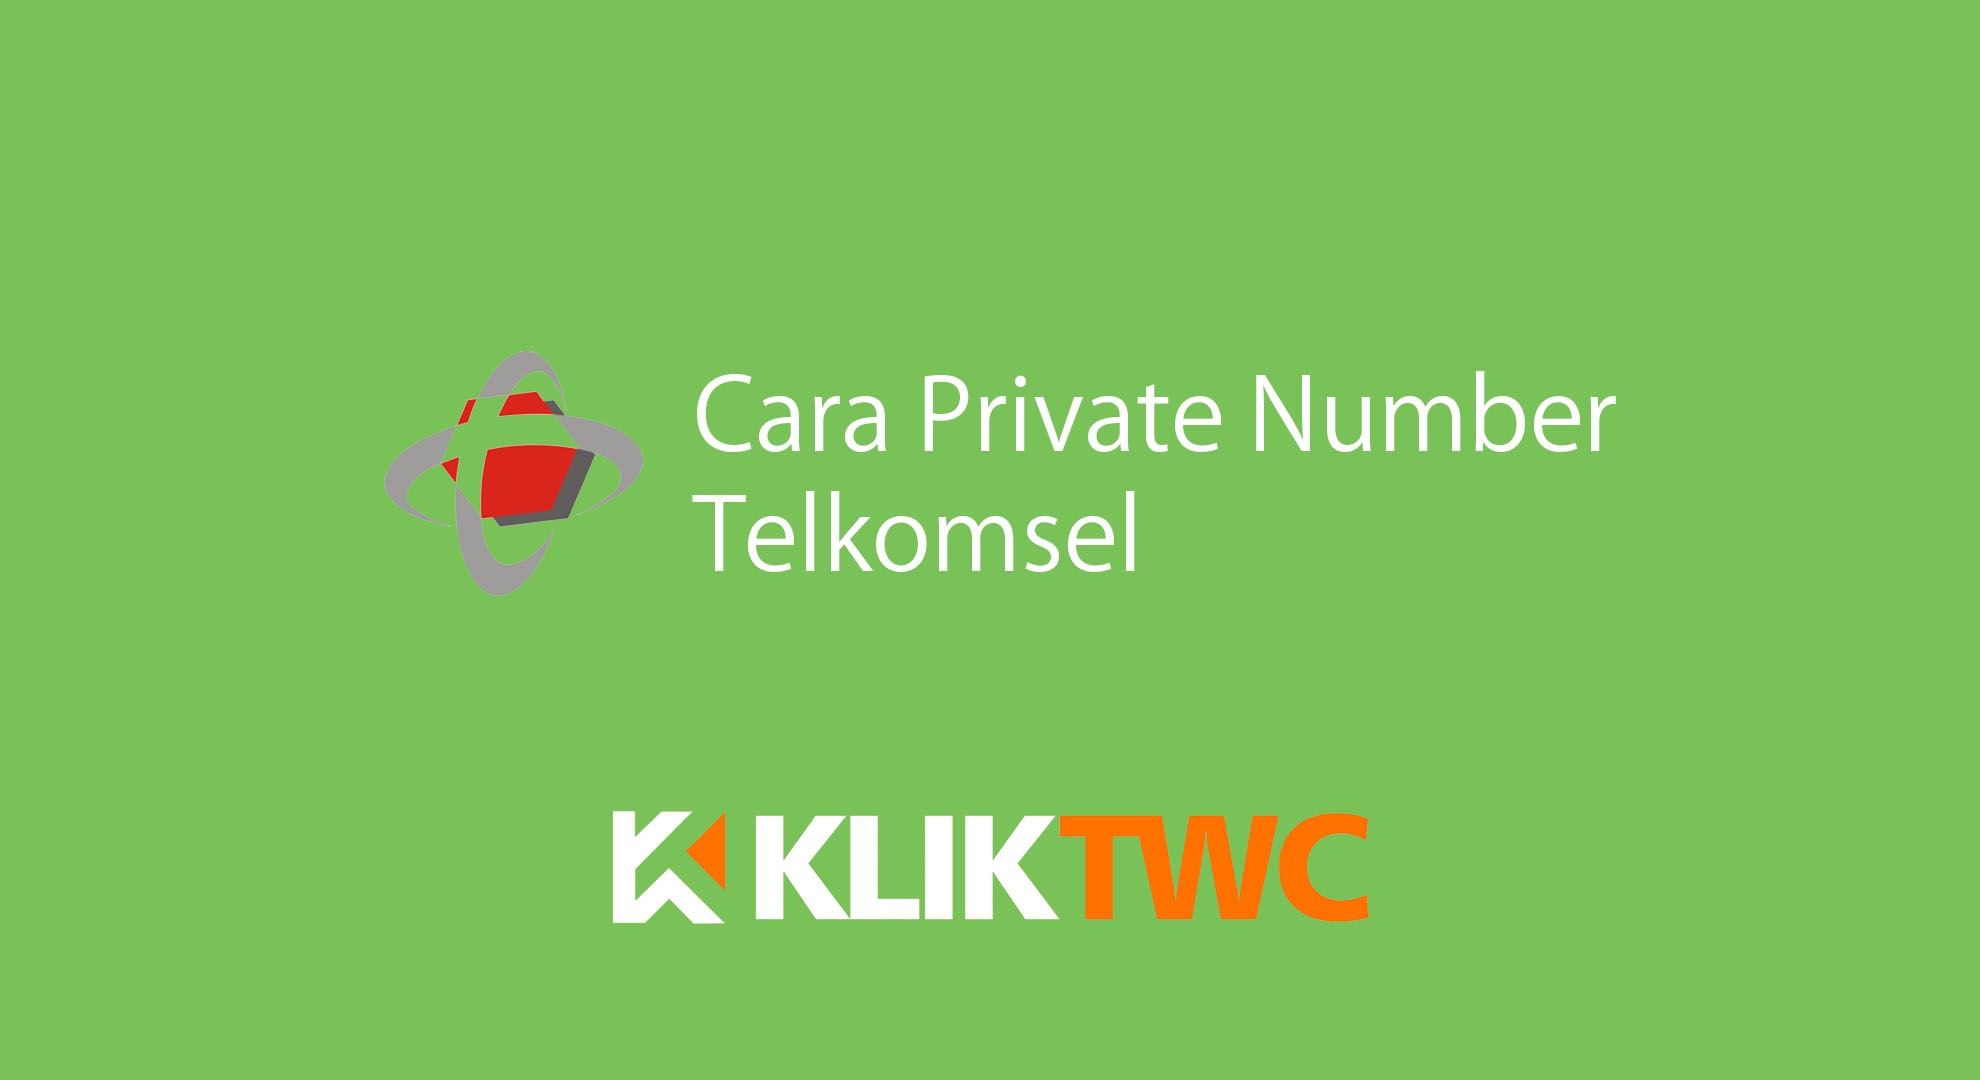 Cara Private Number Telkomsel